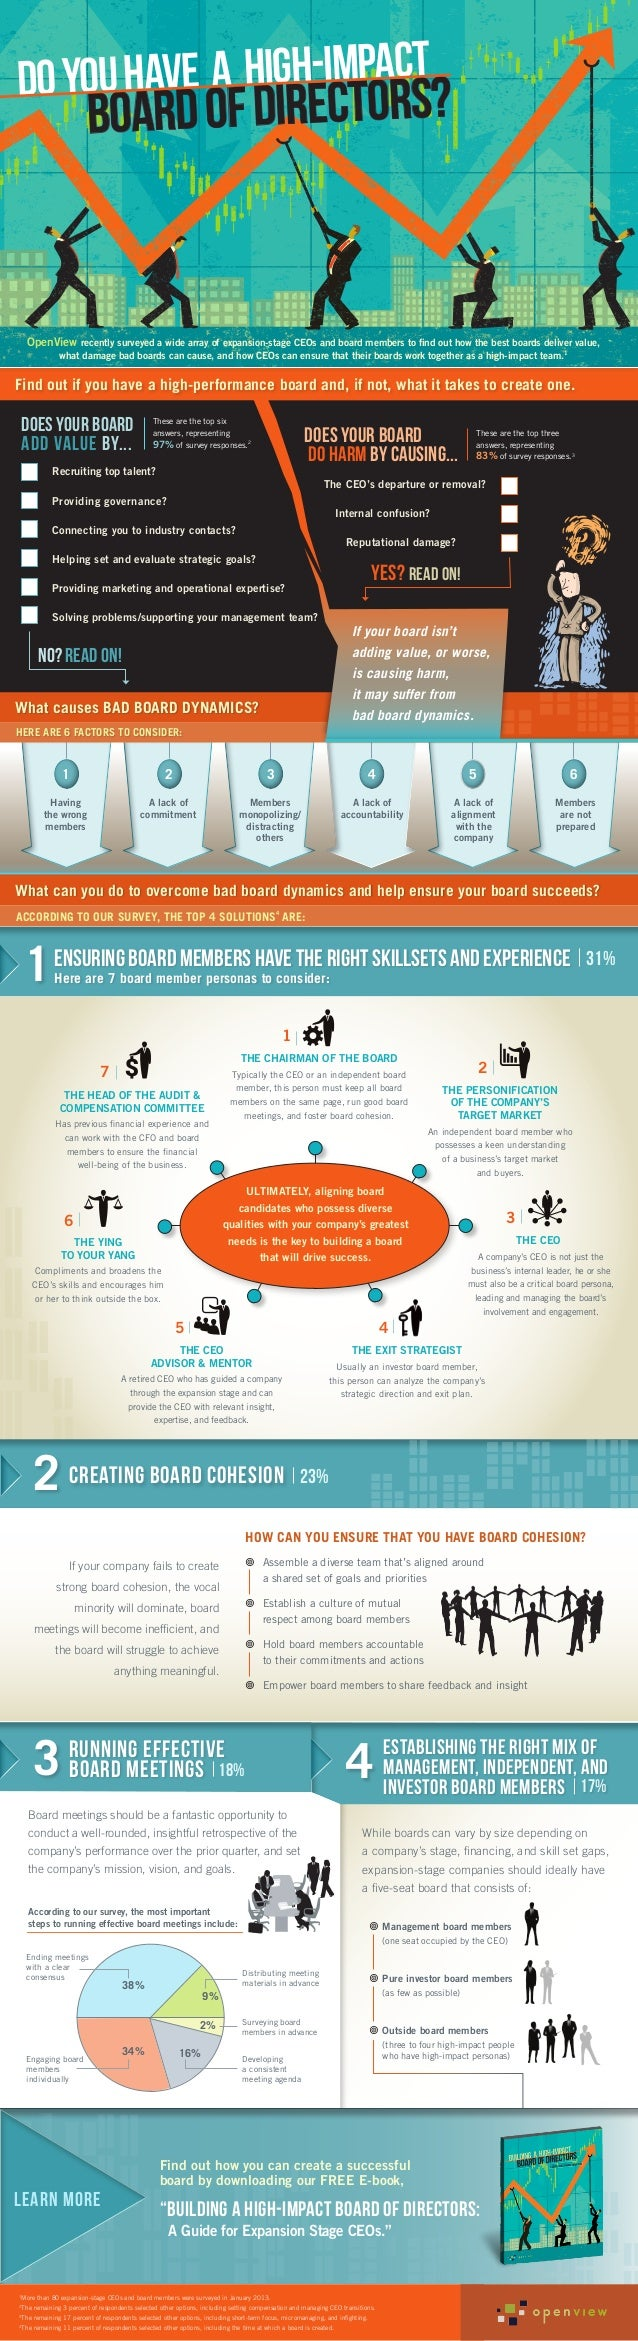 Infographic: Do You Have a High-Impact Board of Directors?